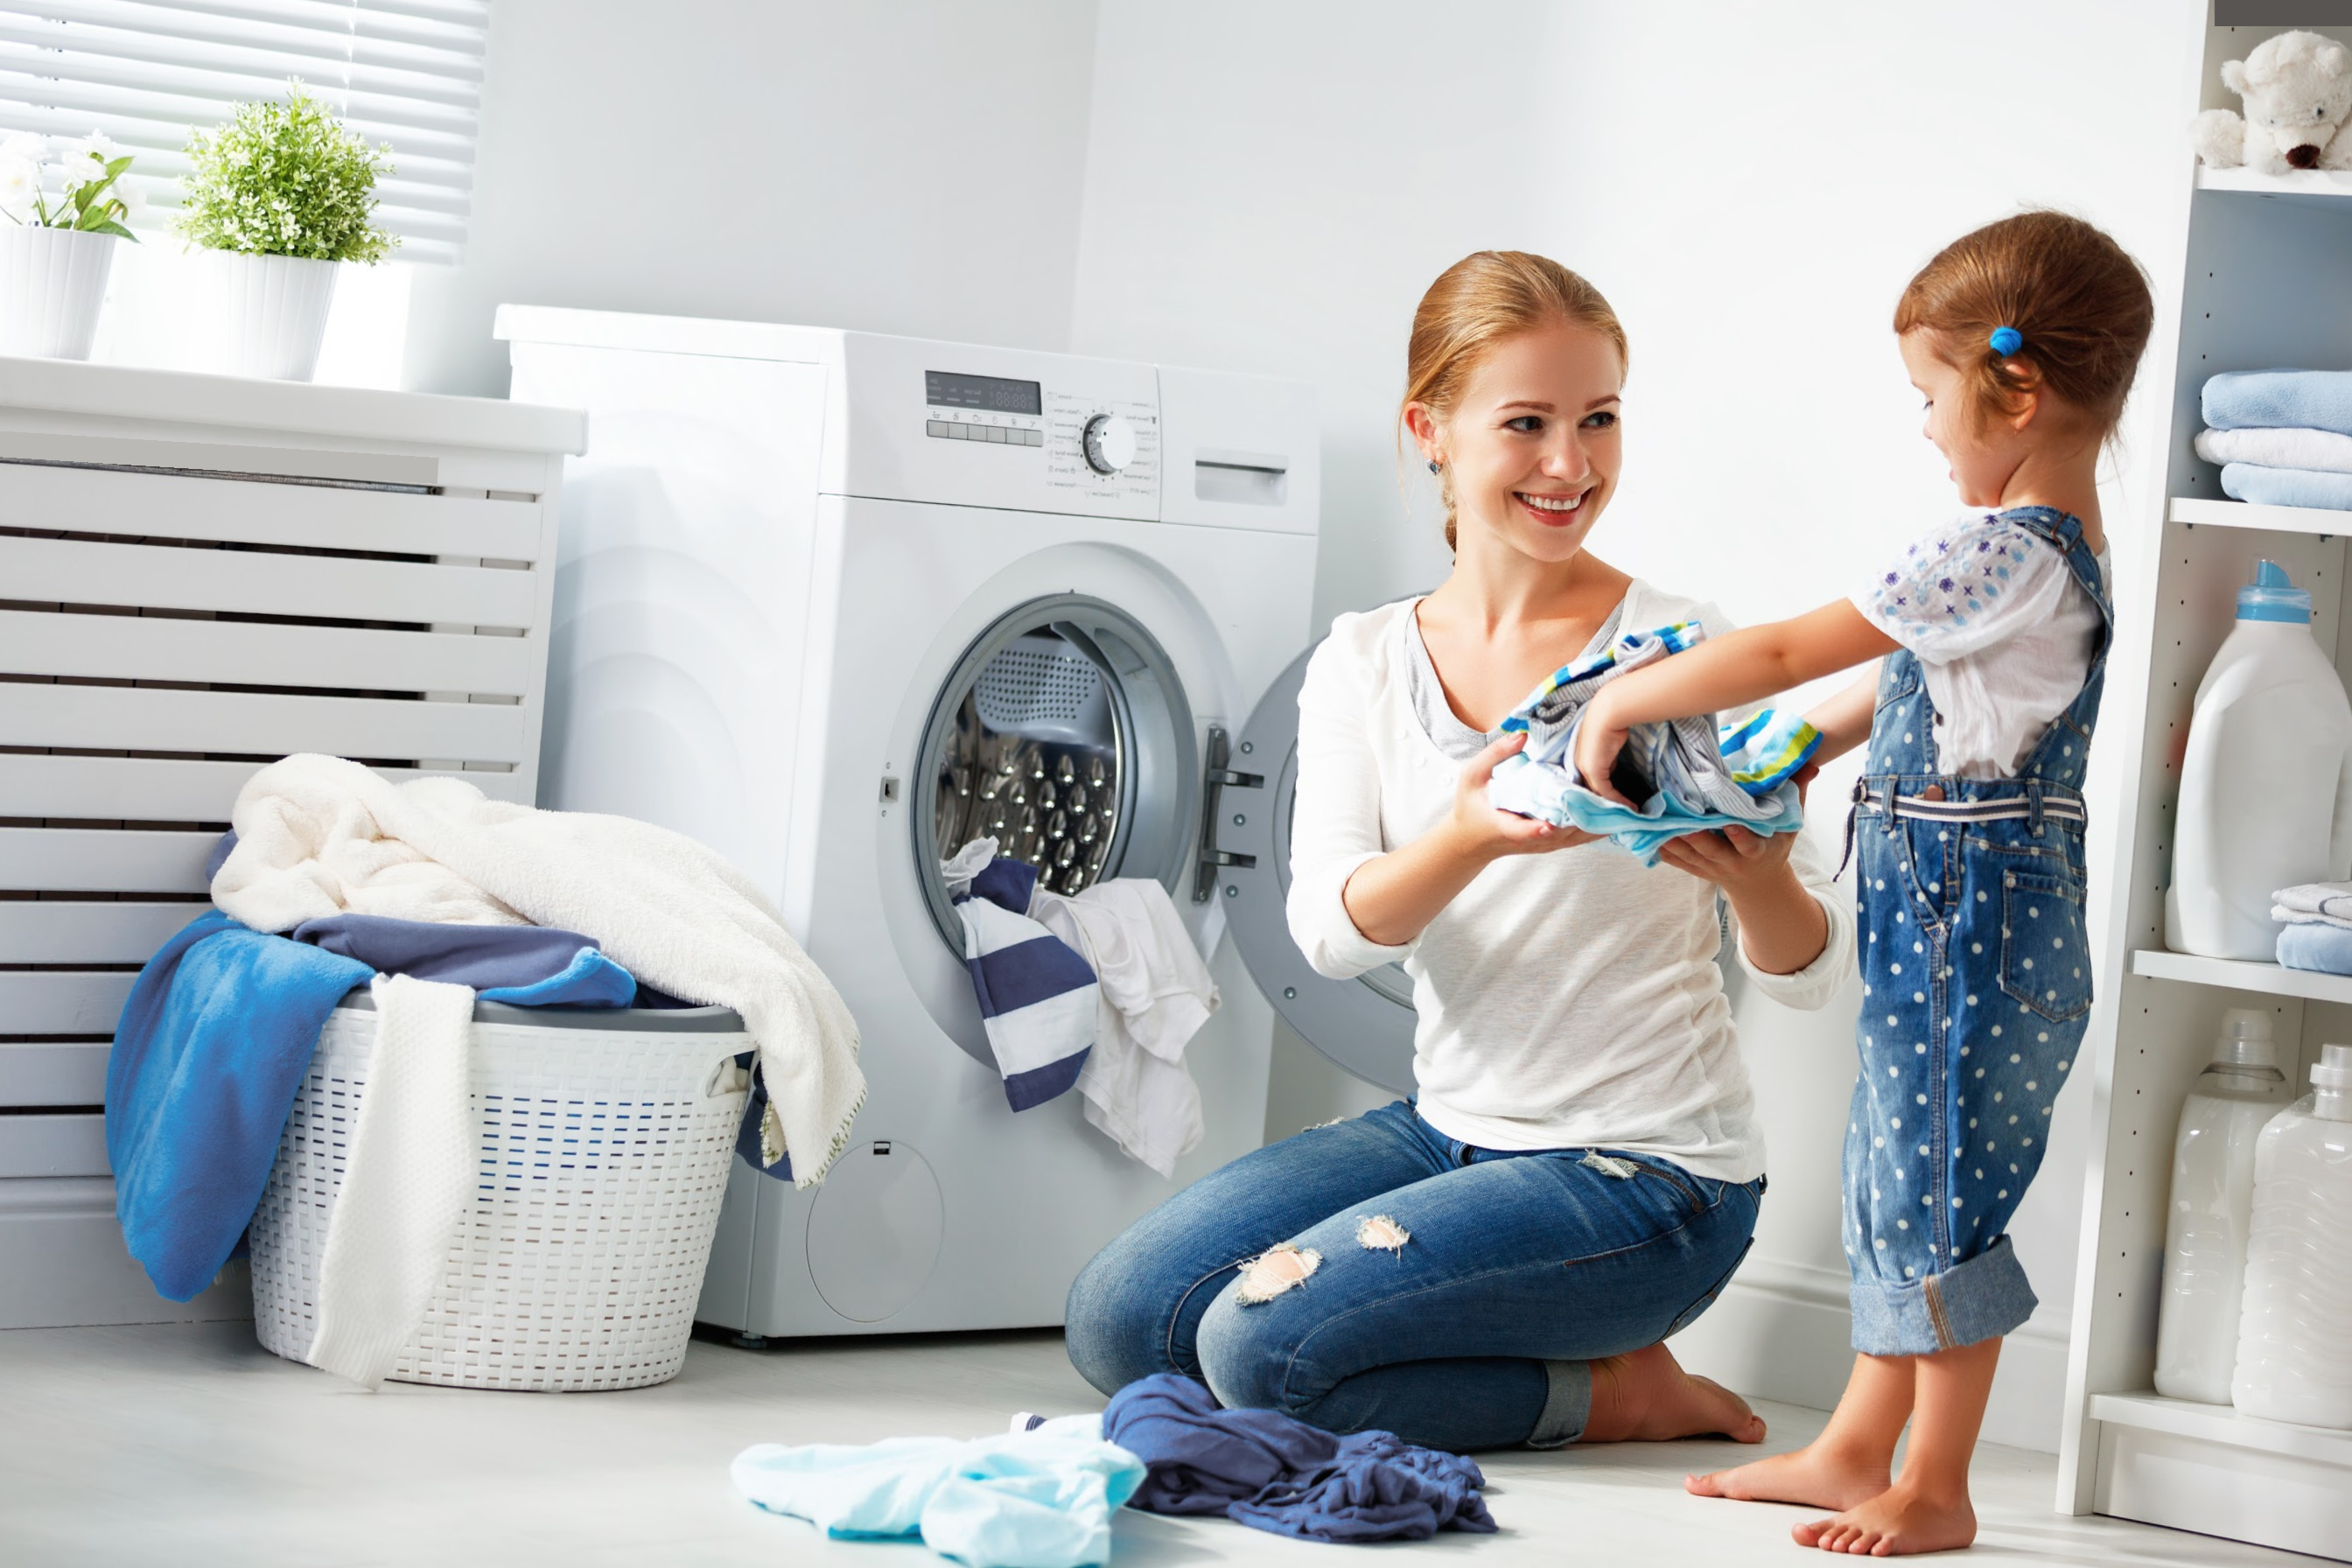 girl helps mom do laundry - examples of positive reinforcement